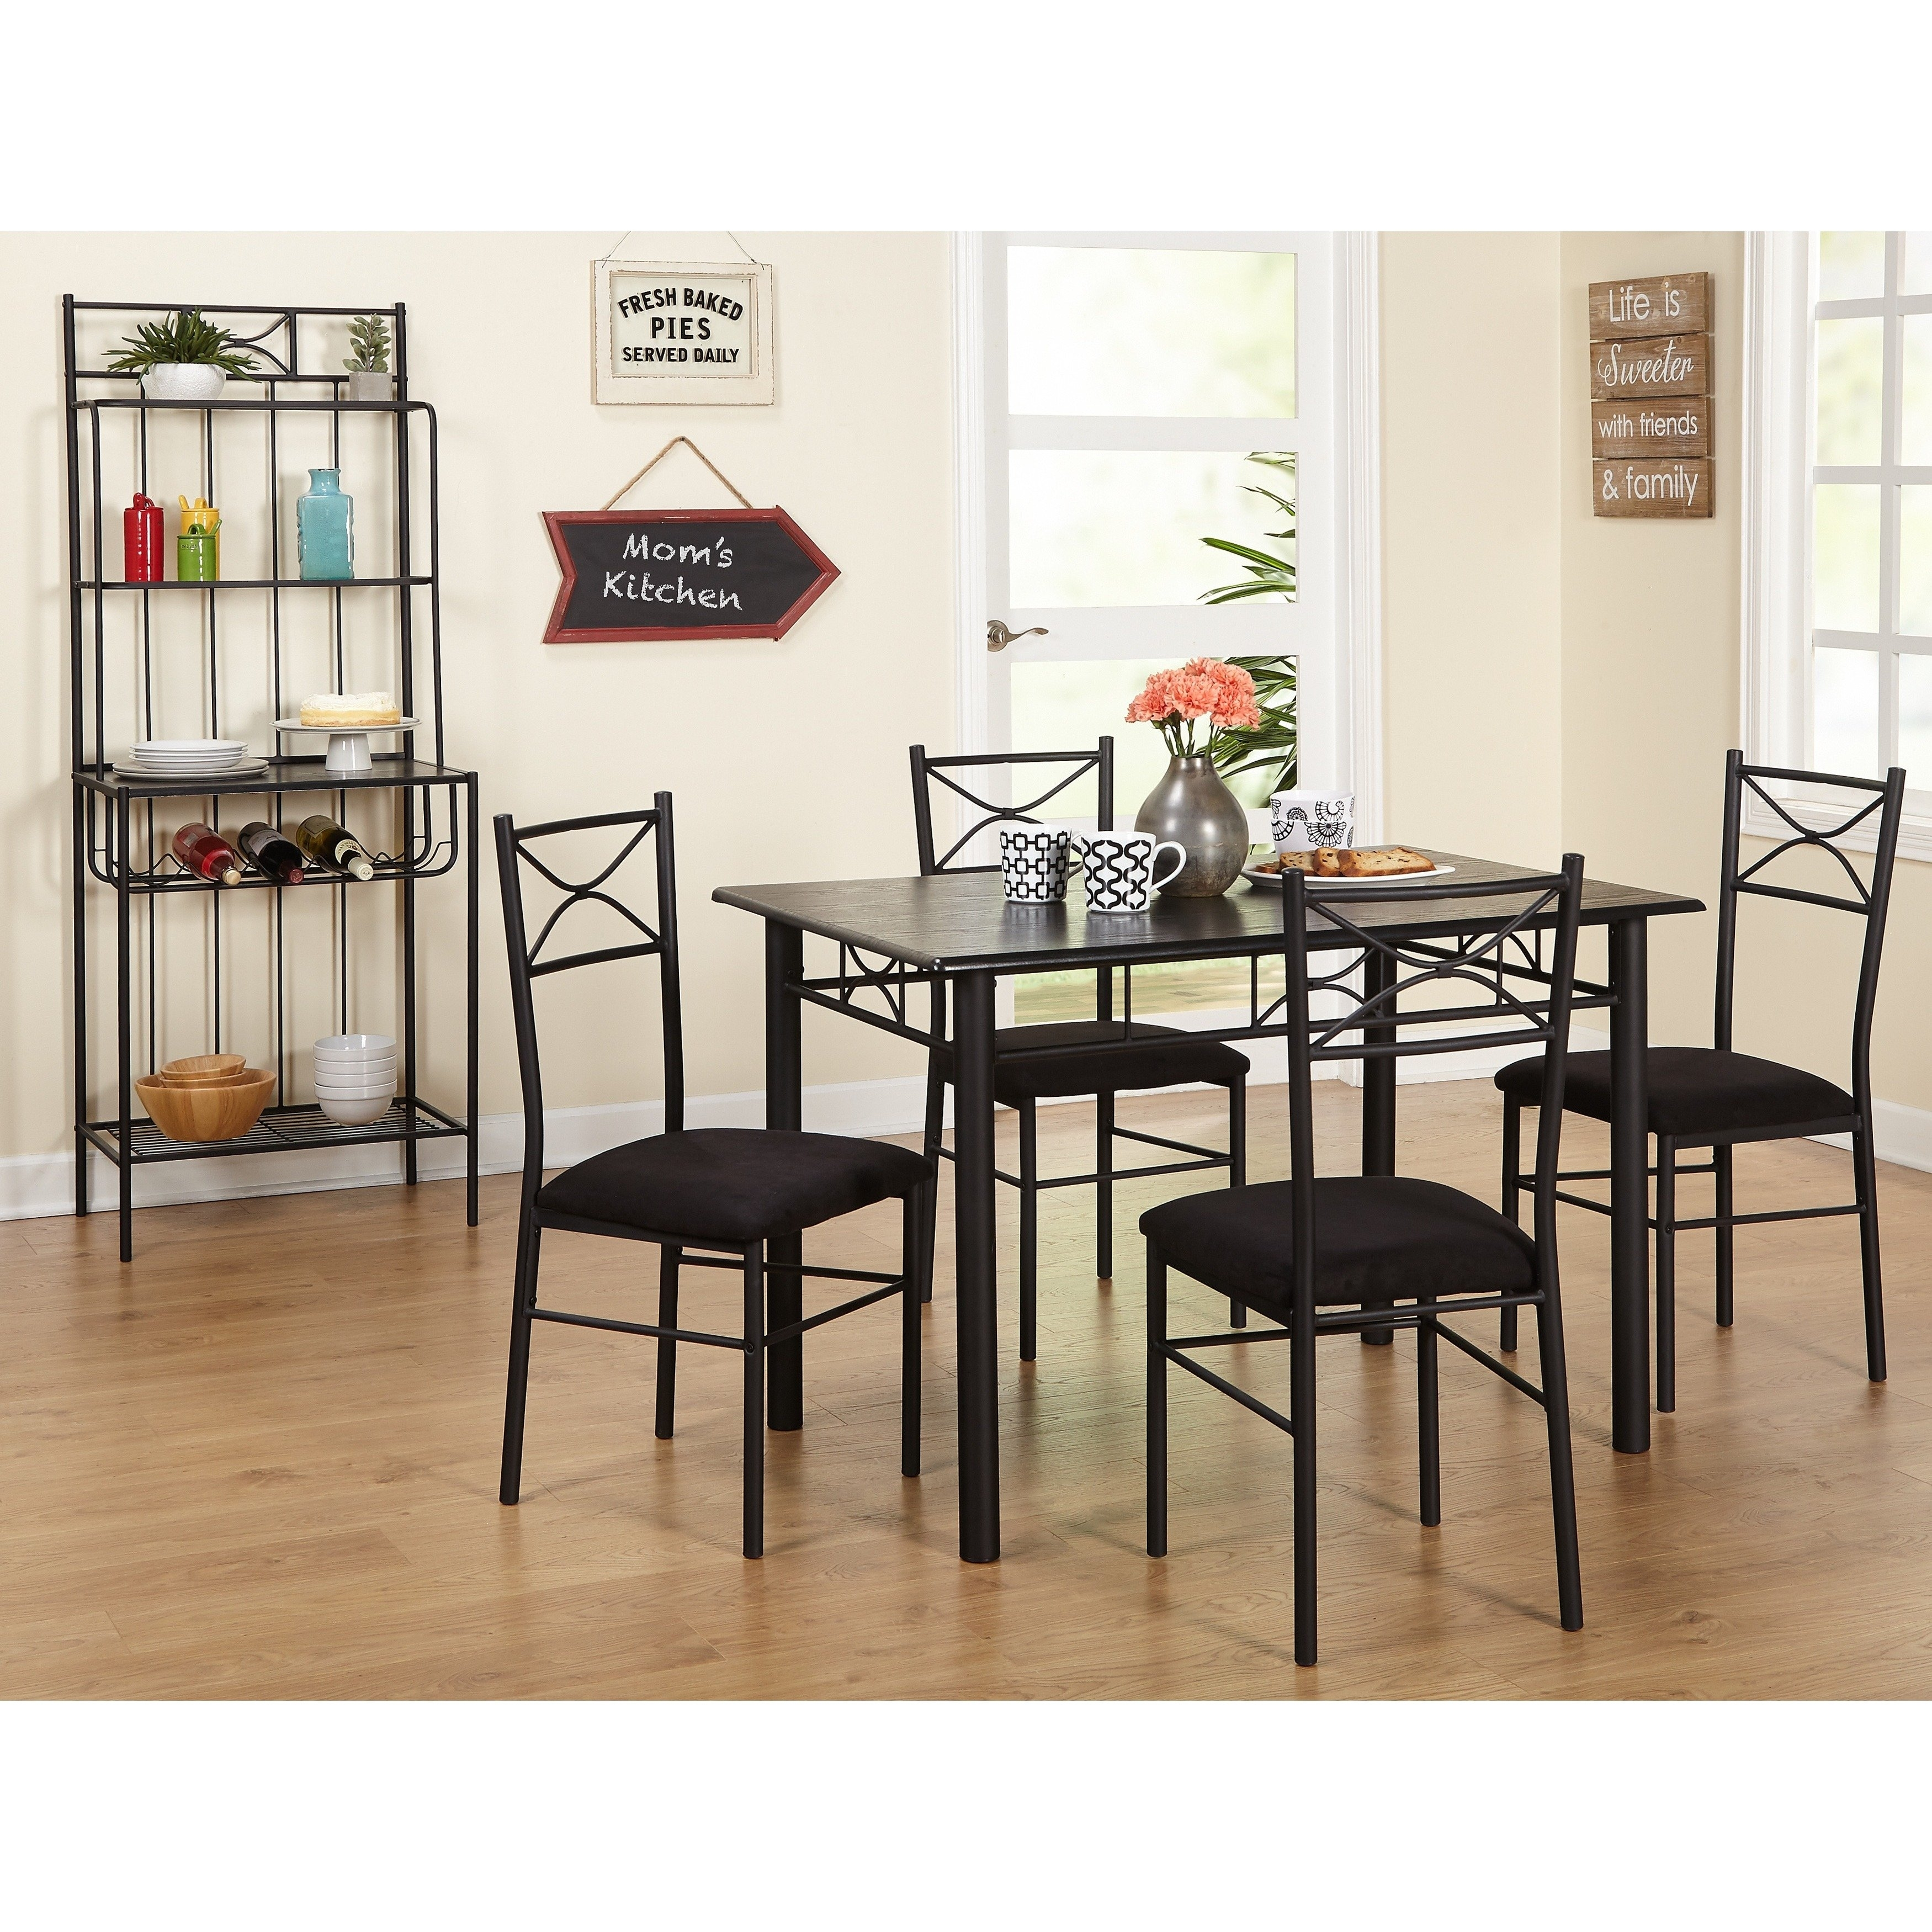 Shop Simple Living Valencia 6 Piece Metal Dining Set With Baker's Regarding Recent Valencia 3 Piece Counter Sets With Bench (Image 11 of 20)